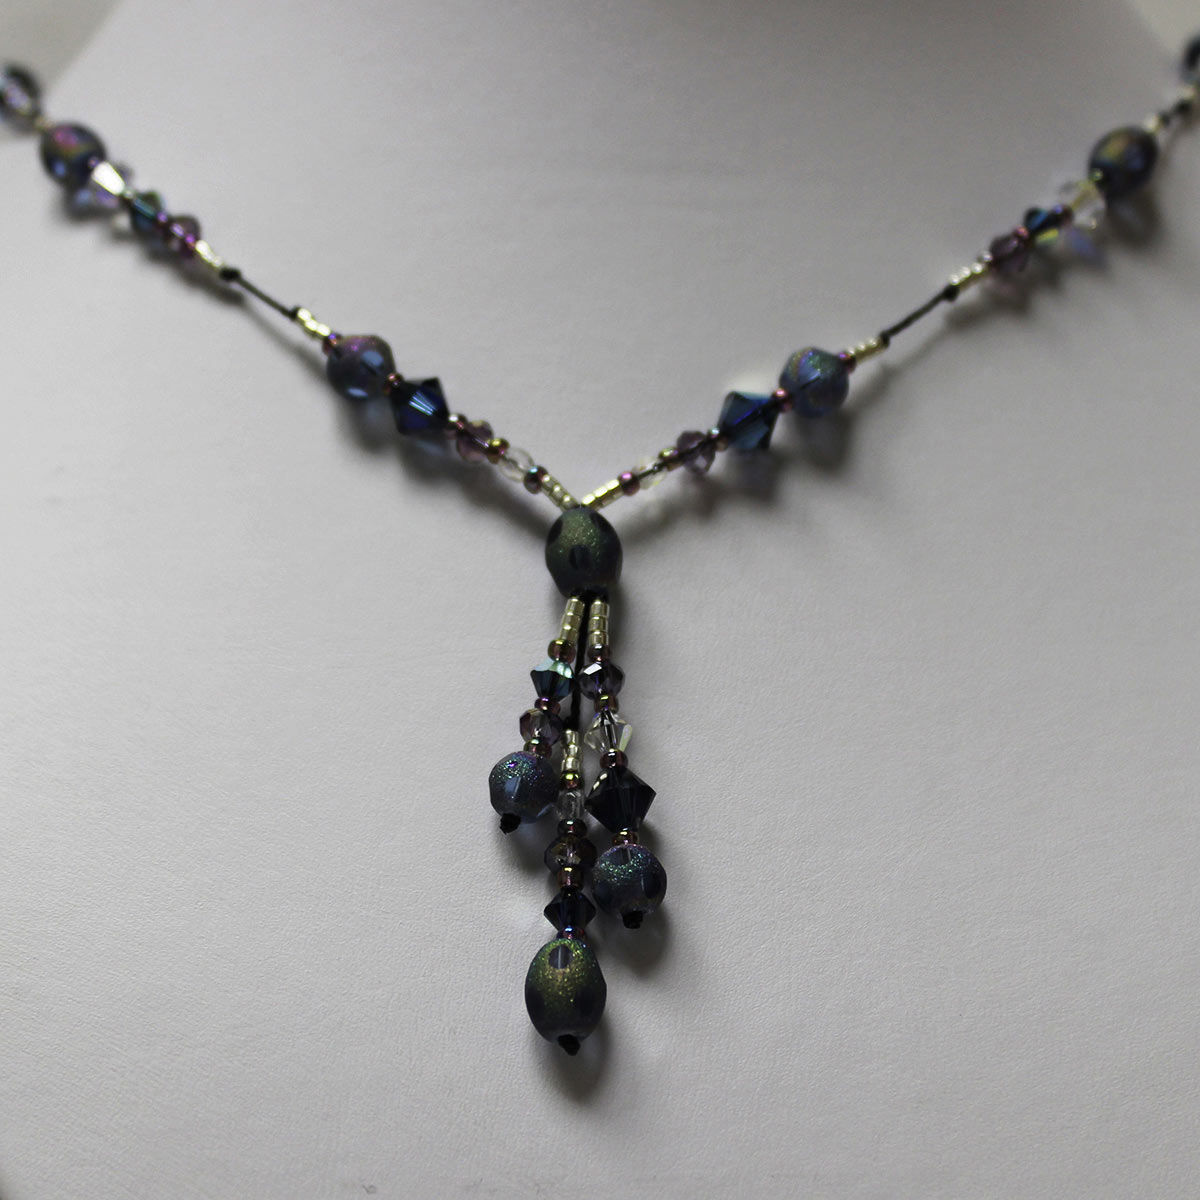 triple drop necklace, stardust beads, amethyst crystals, clear crystals